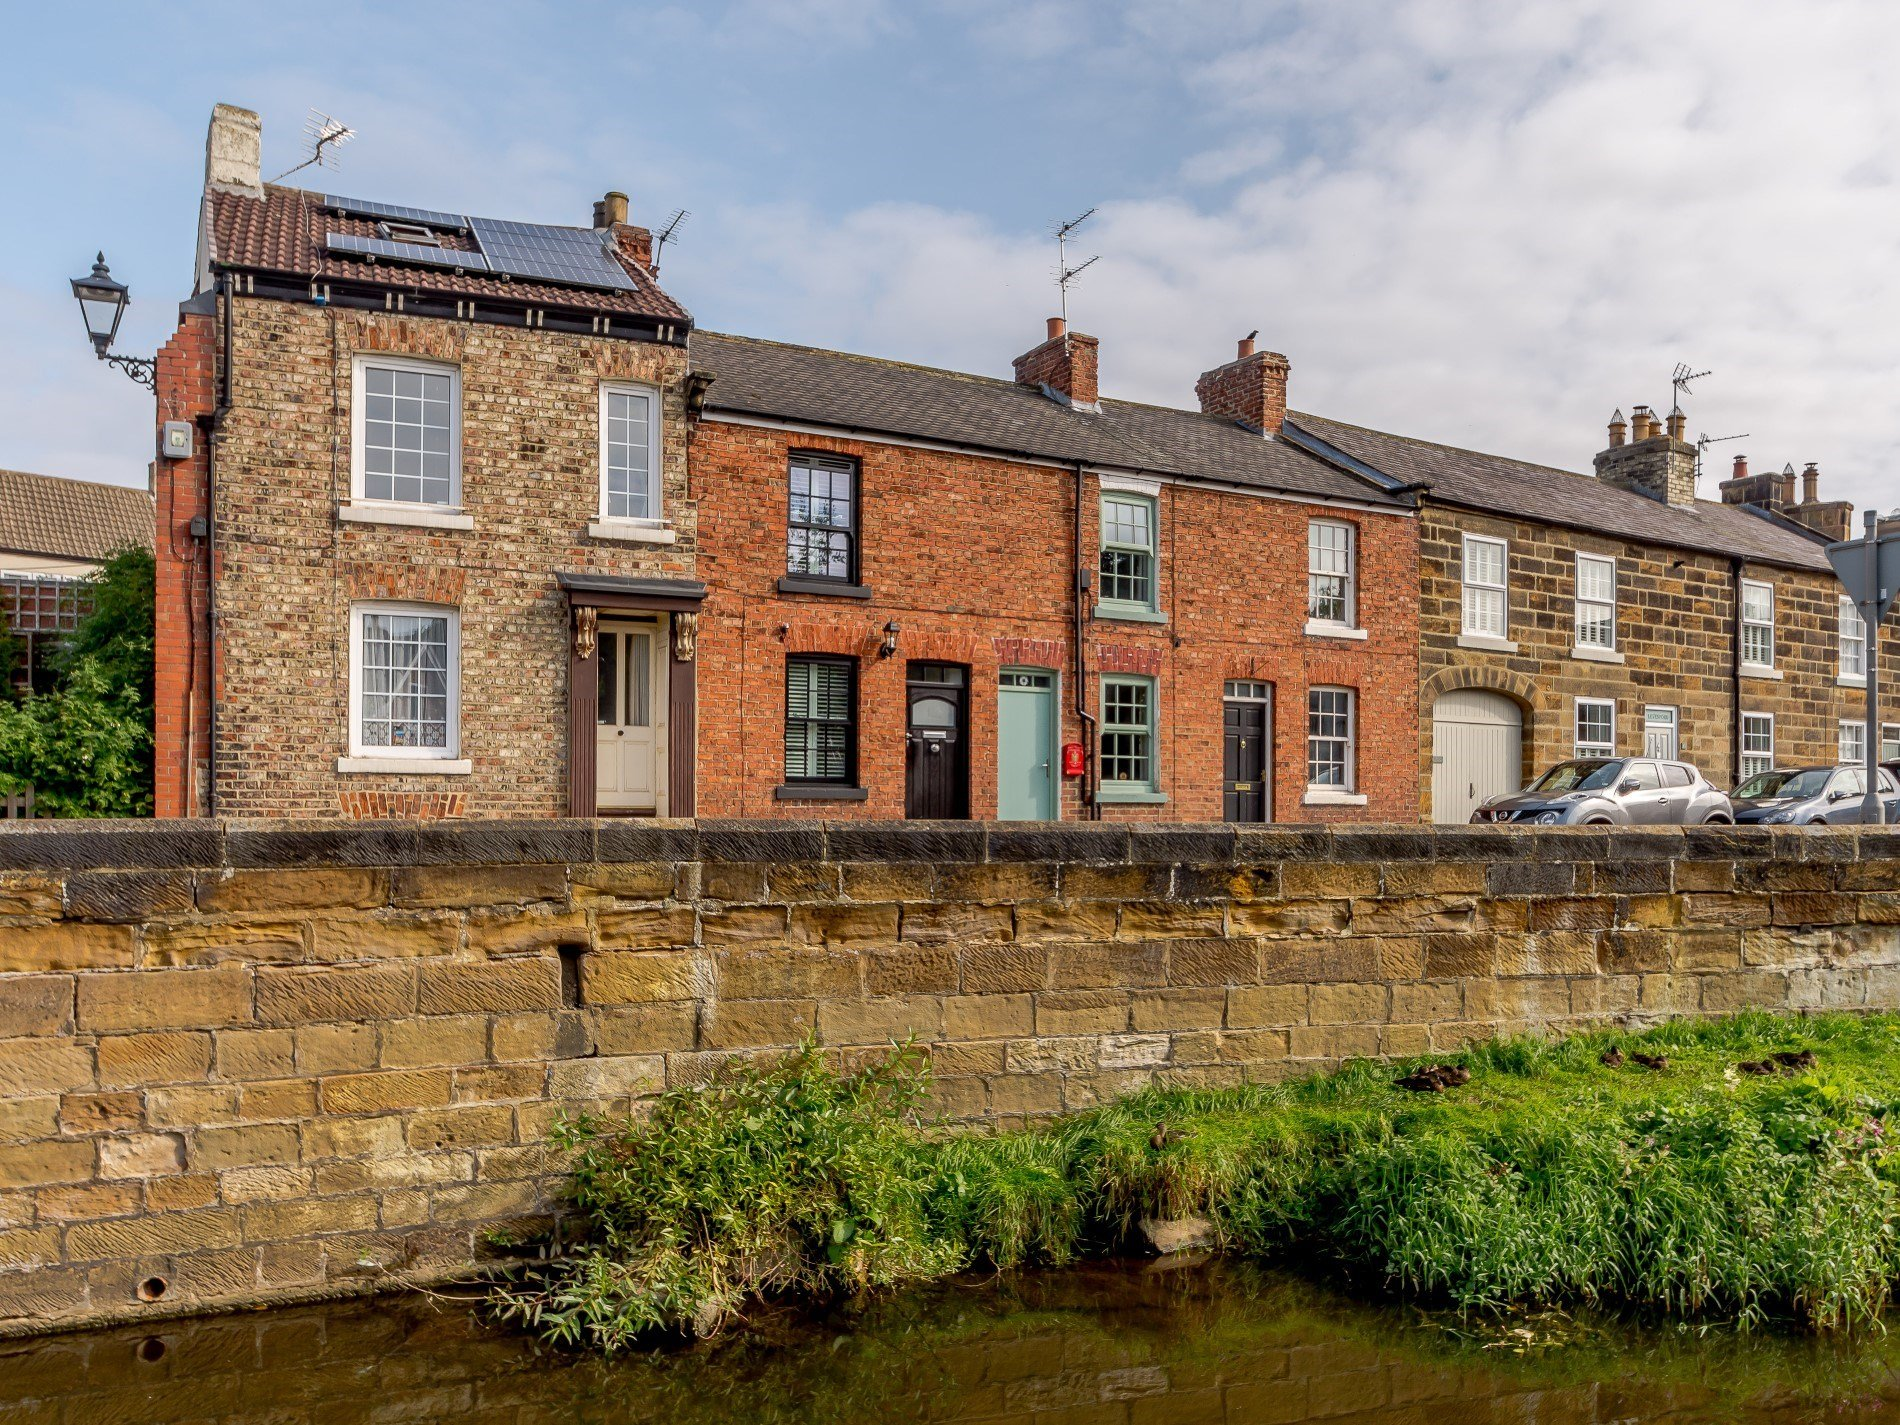 1 Bedroom Cottage in North Yorkshire, North York Moors and Coast